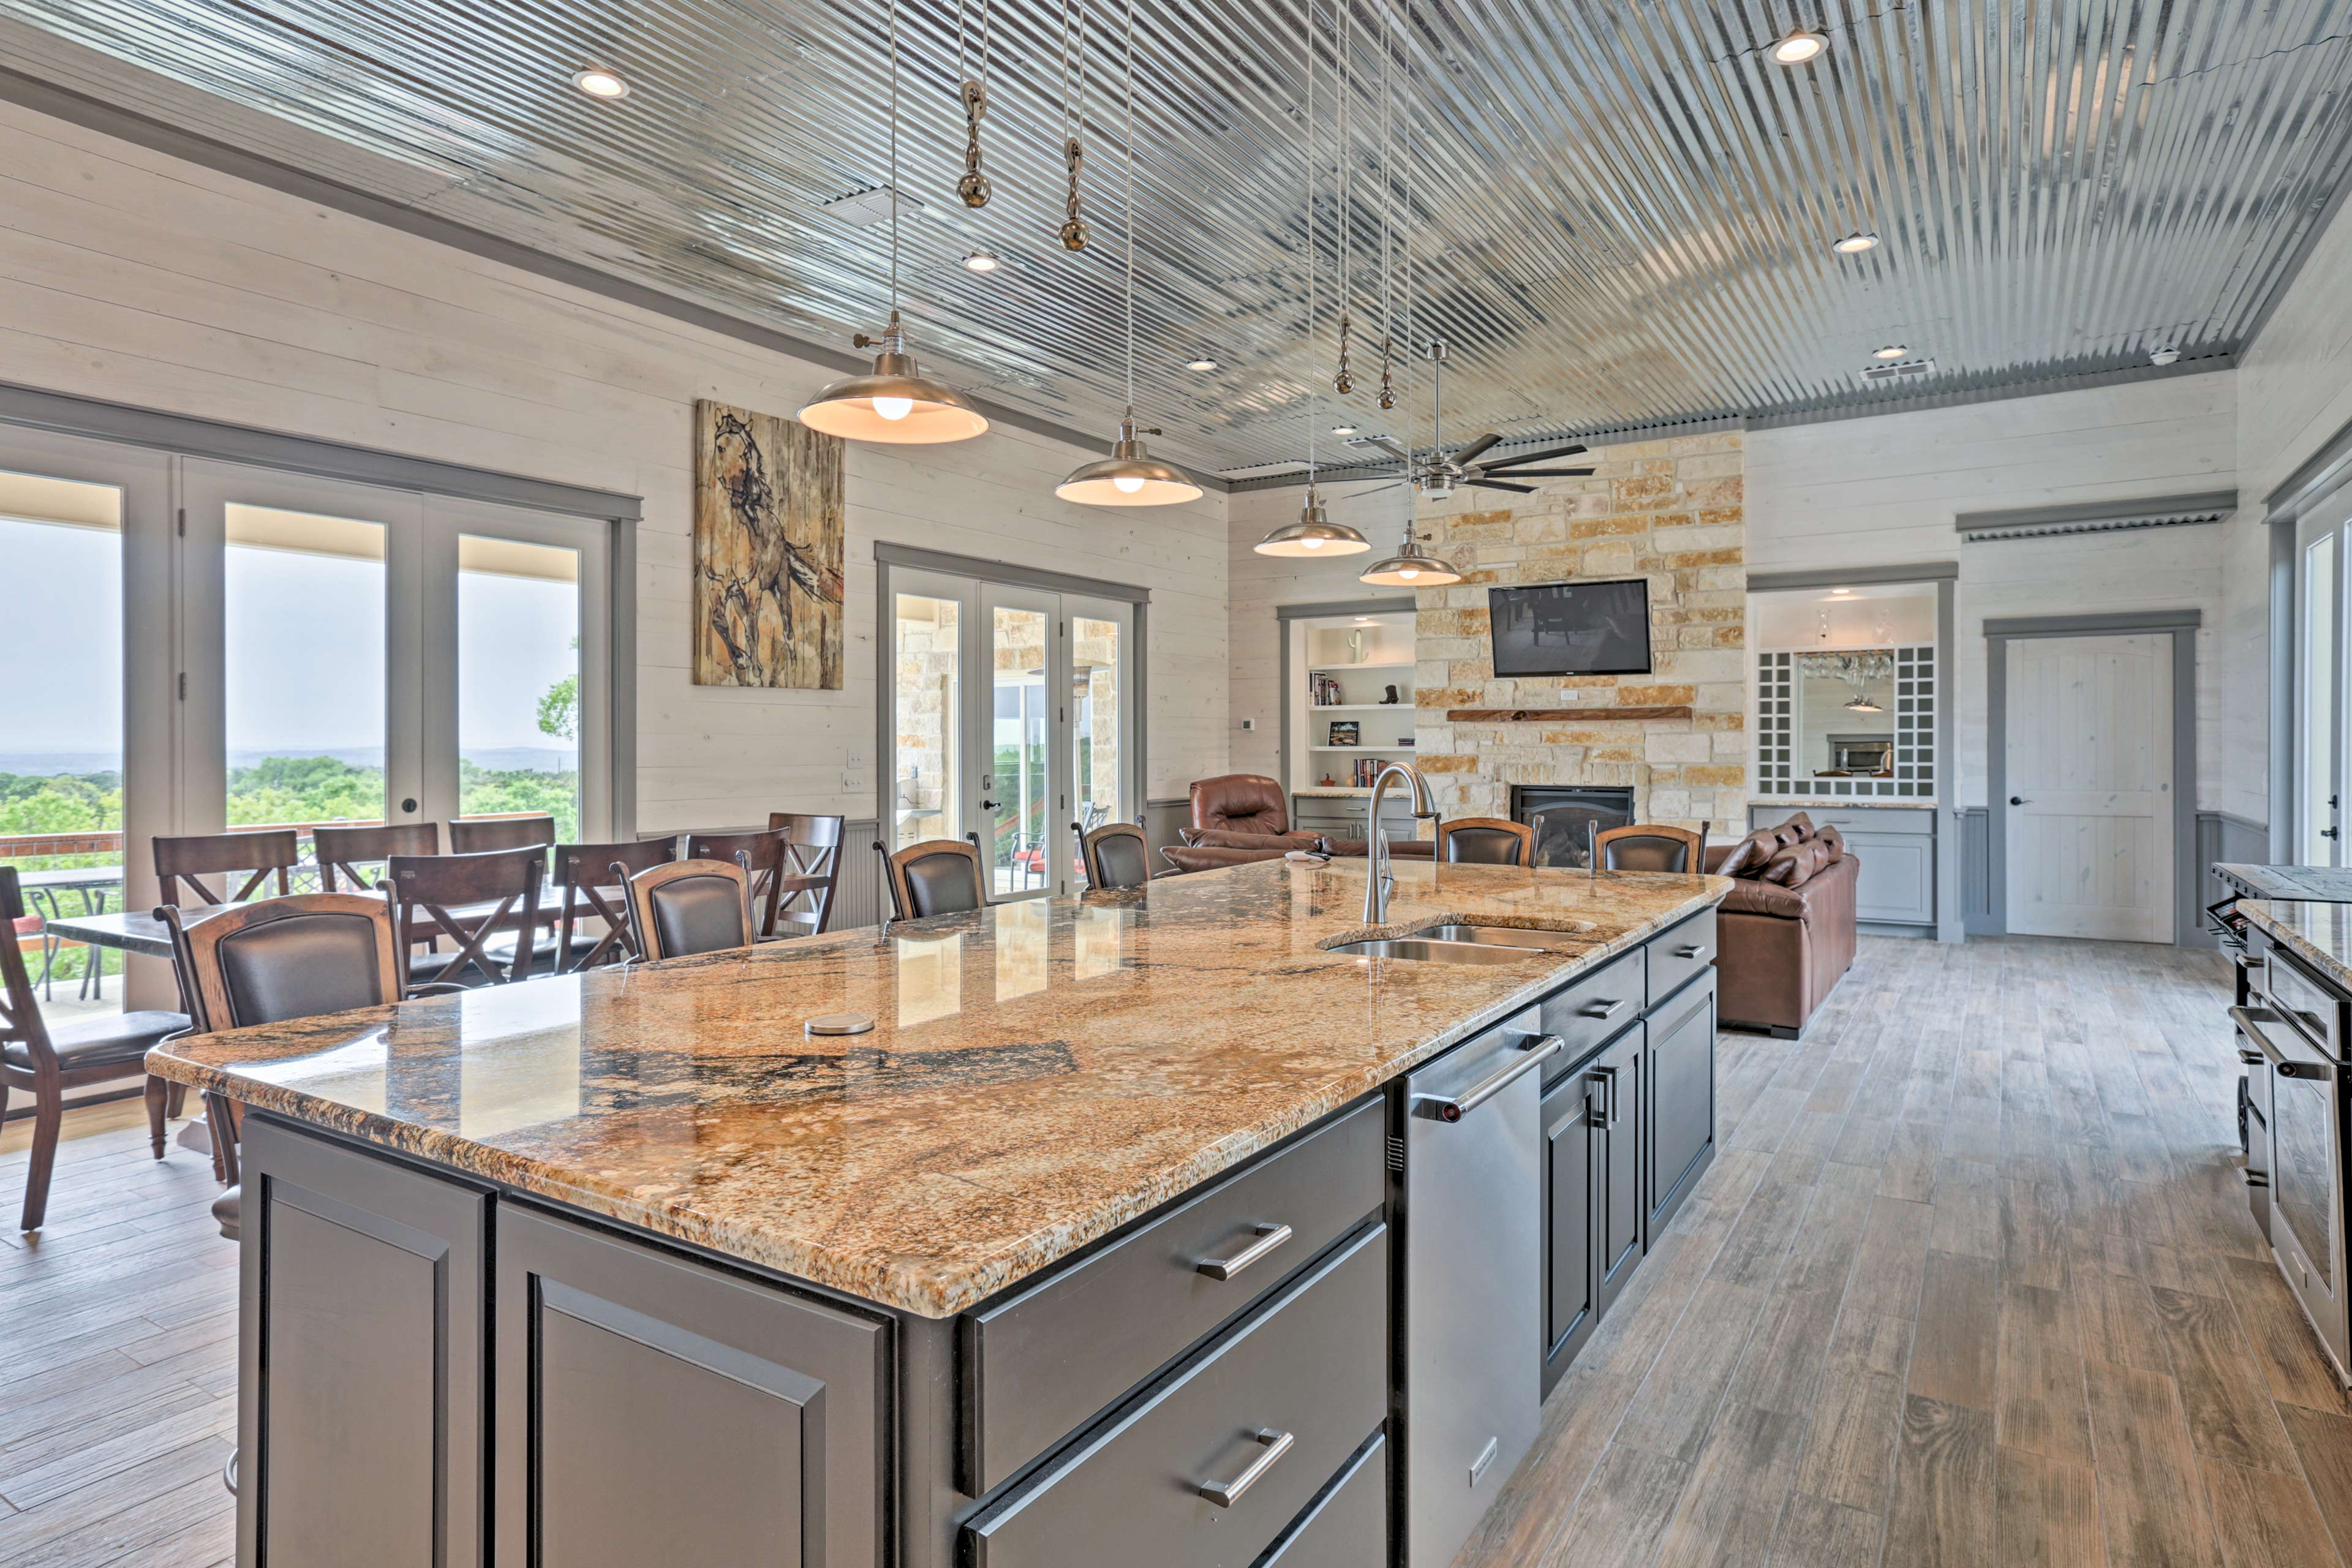 Cooking for 7 is easy as pie in this fully equipped kitchen.